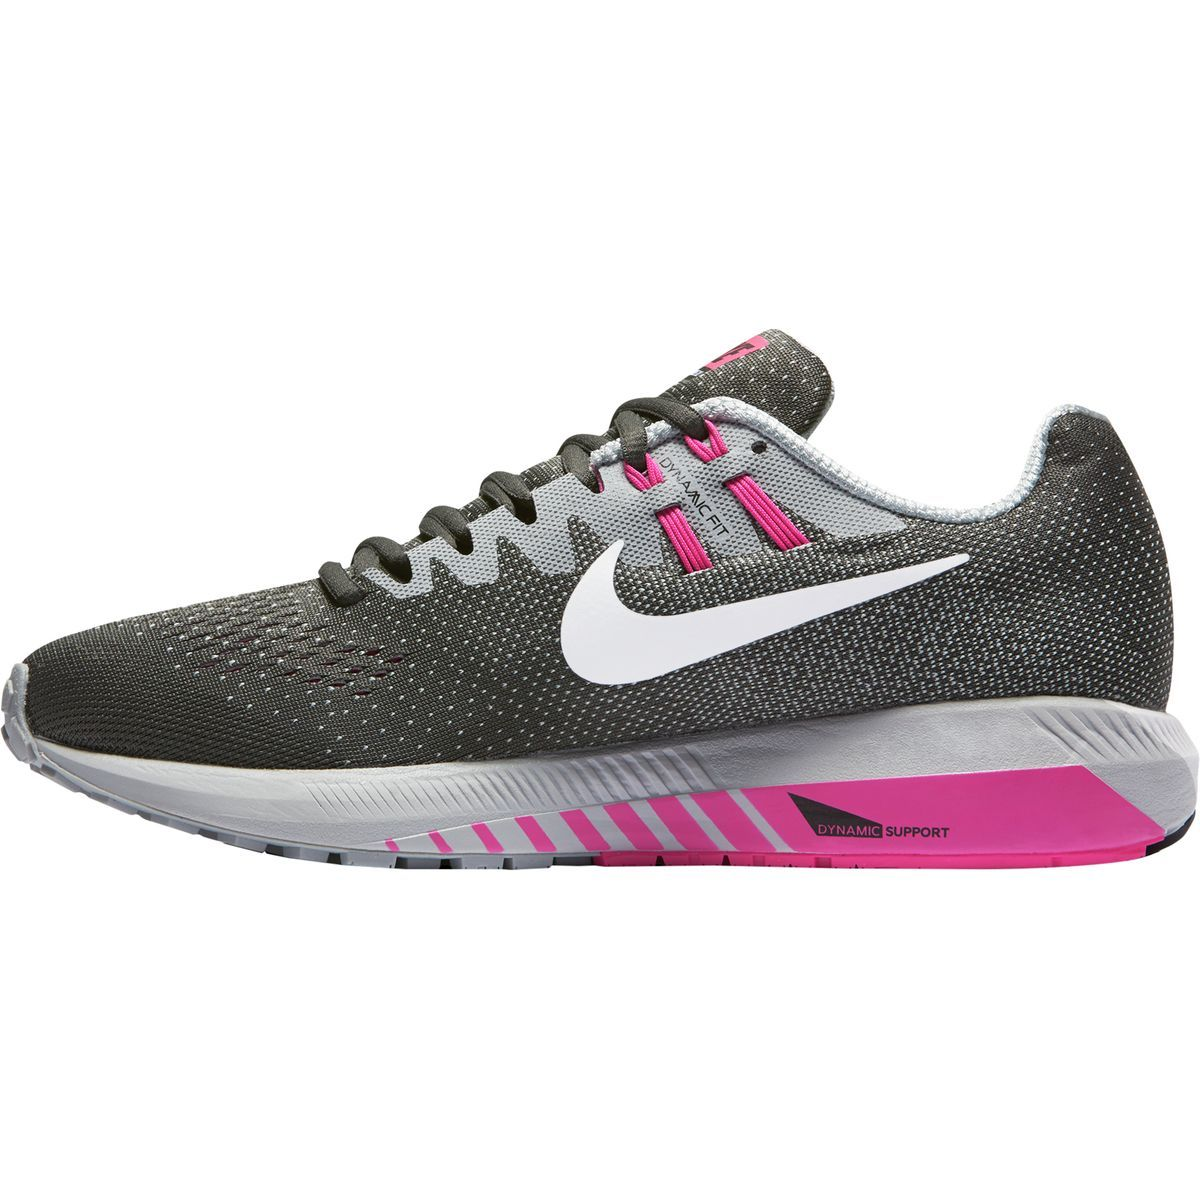 0608 849576 Nike Air Zoom Structure 20th Anniversary Women Black Pink 36 39